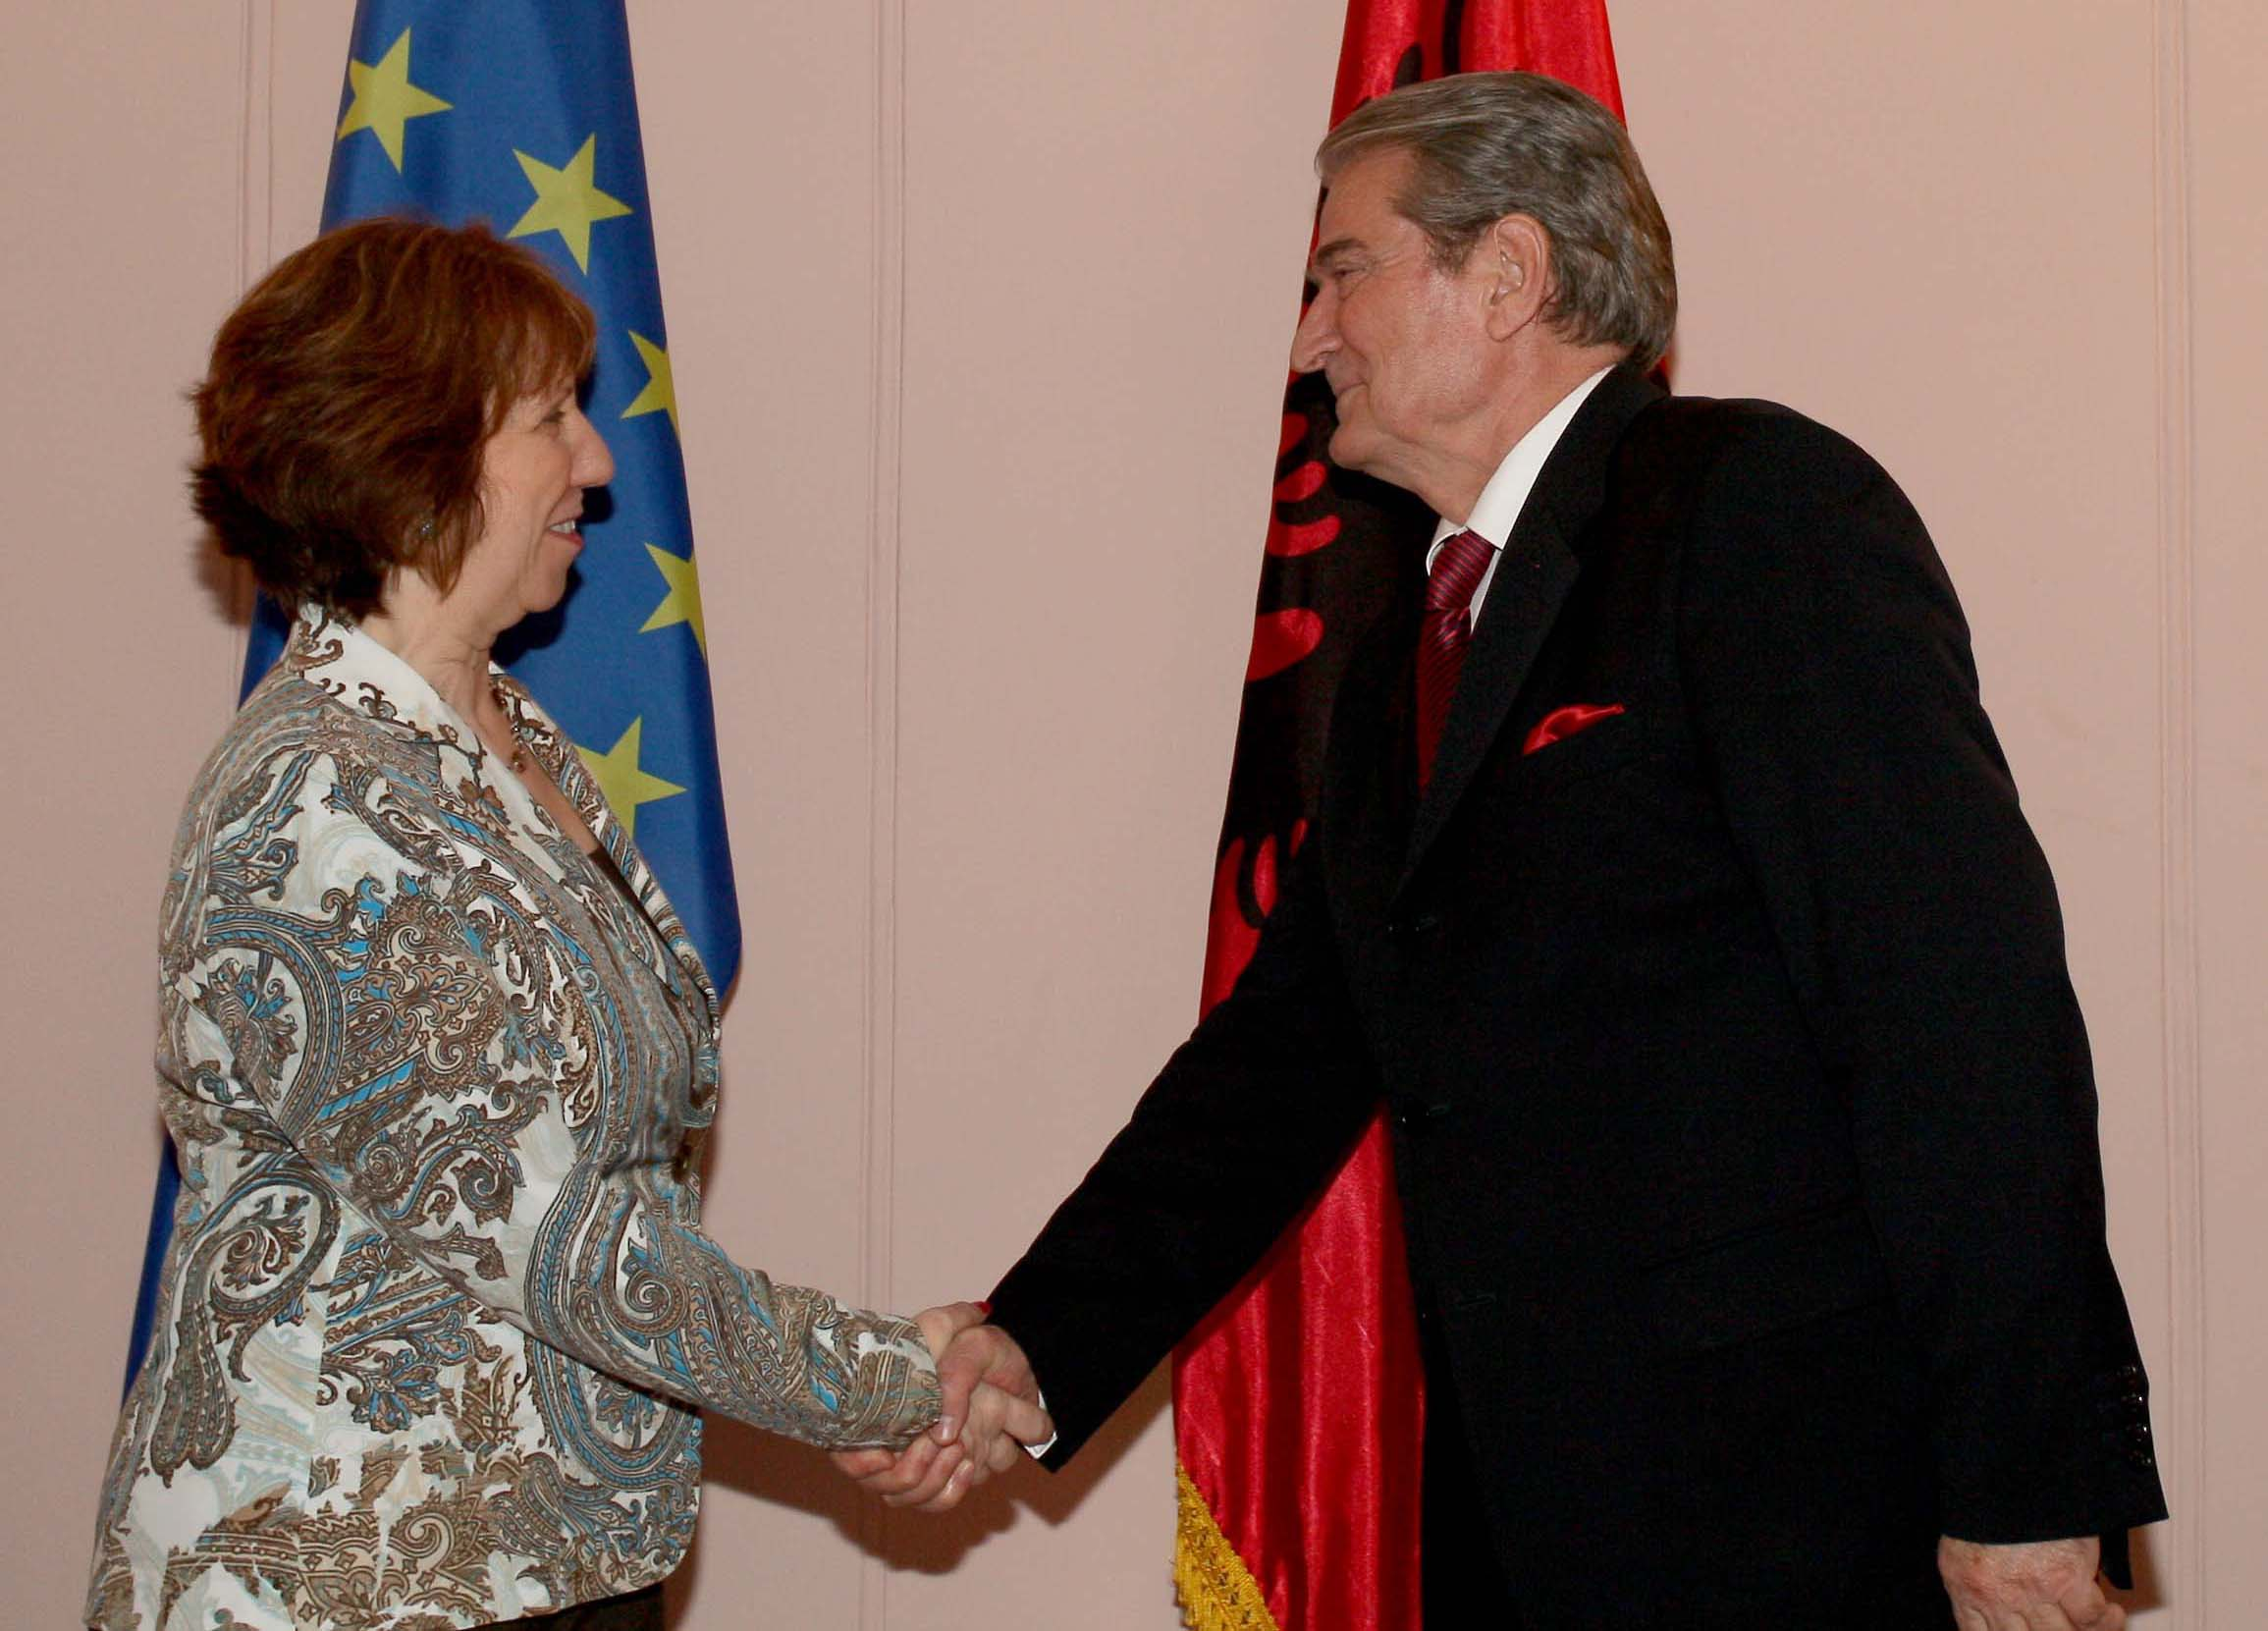 Albanian Prime Minister Sali Berisha meets Catherine Ashton, former High Representative of the Union for Foreign Affairs and Security Policy, SpotlightEurope_Zoela2